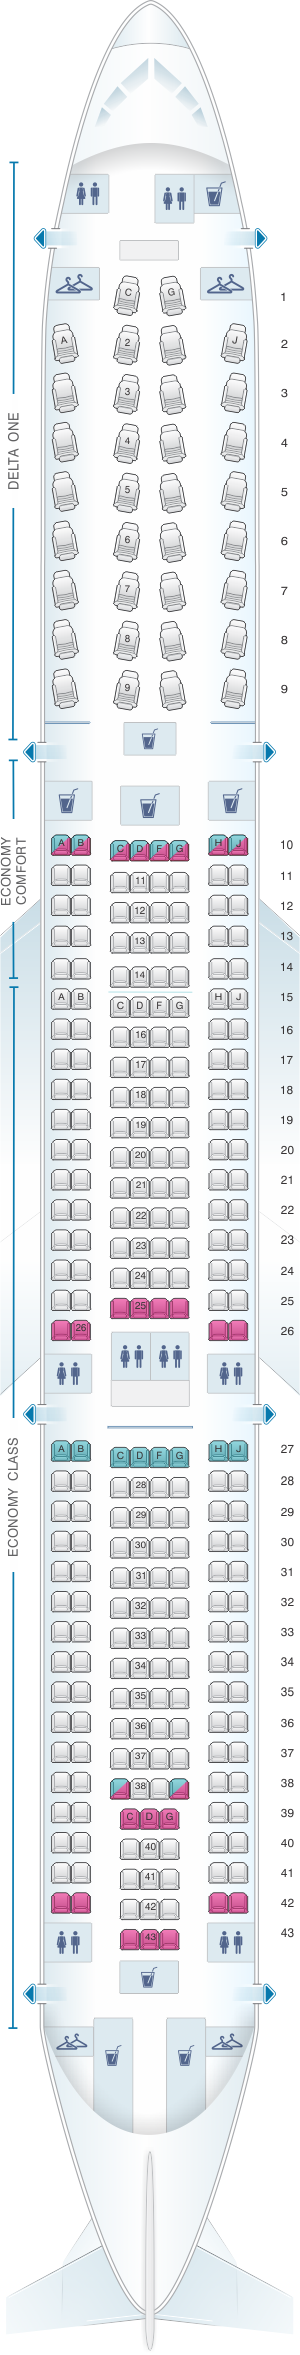 Seat map for Delta Airlines Airbus A330 300 (333)